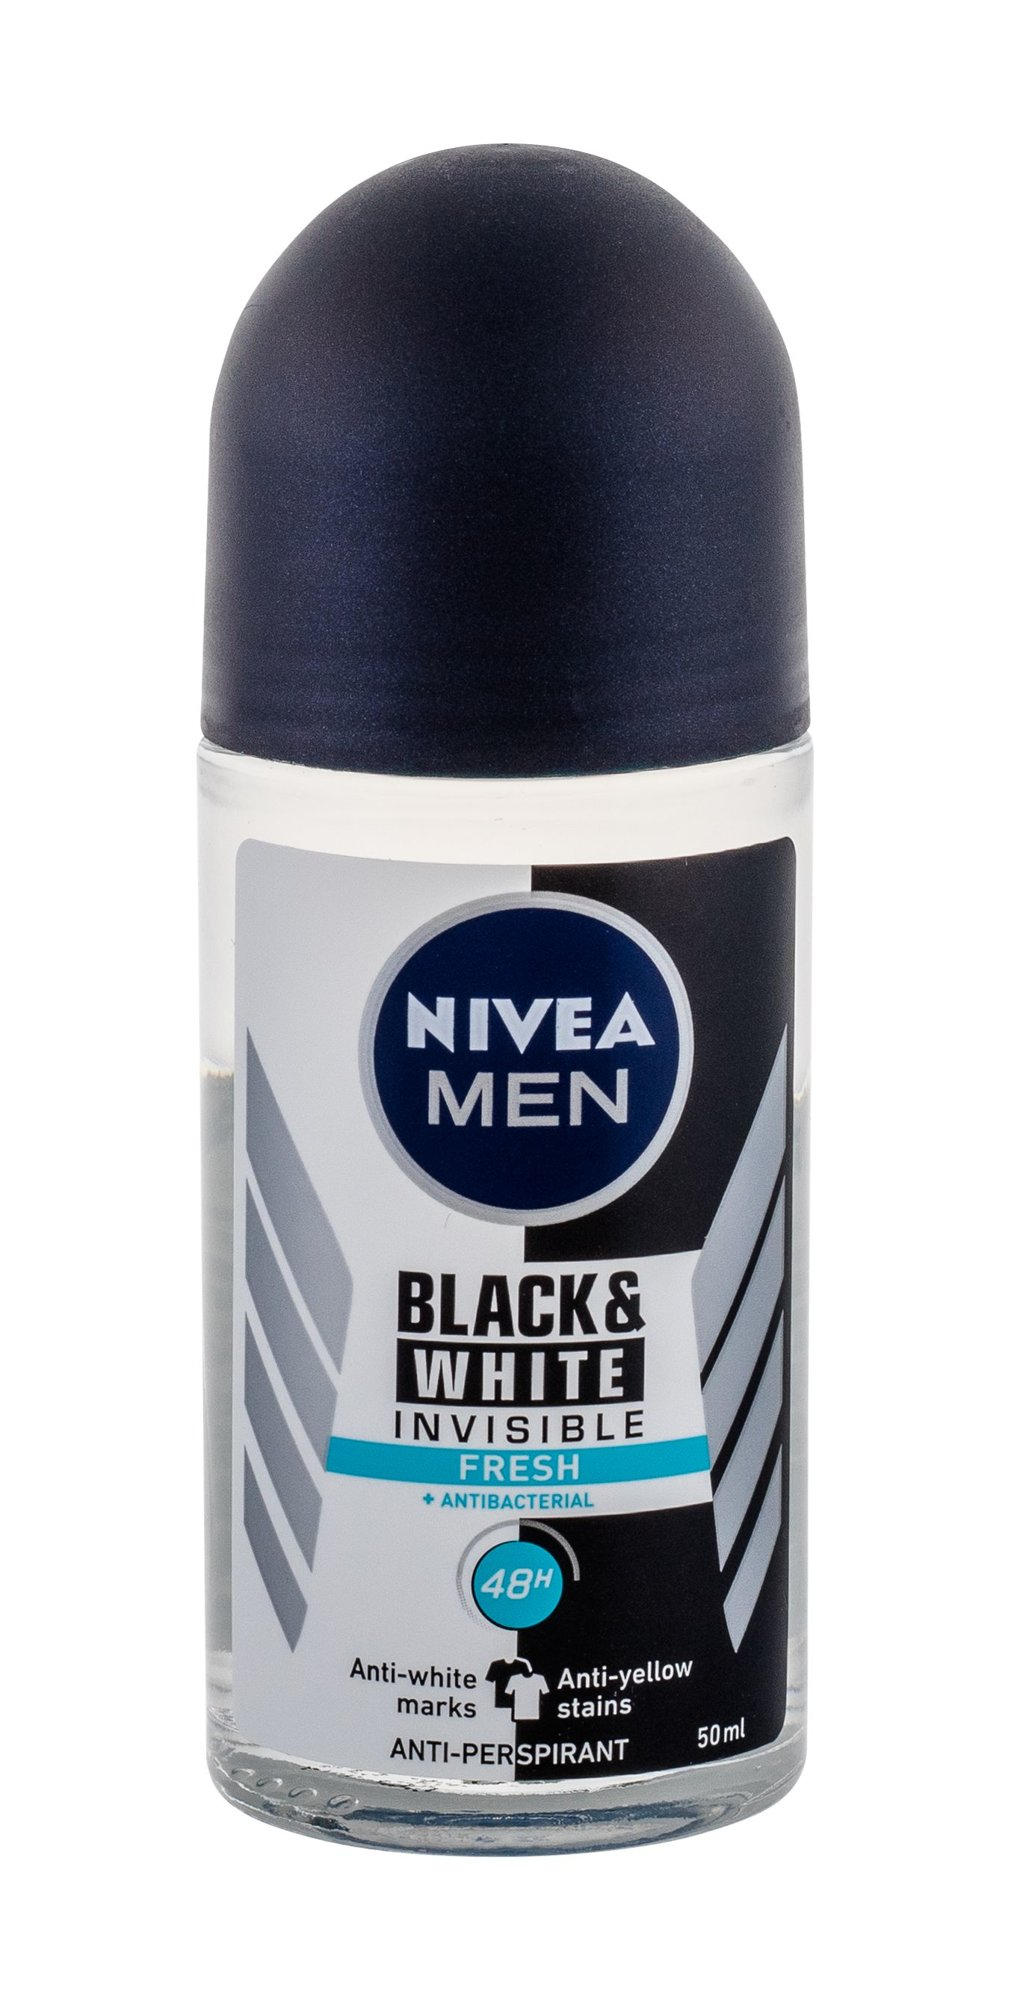 Nivea Men Invisible For Black & White Antiperspirant 50ml